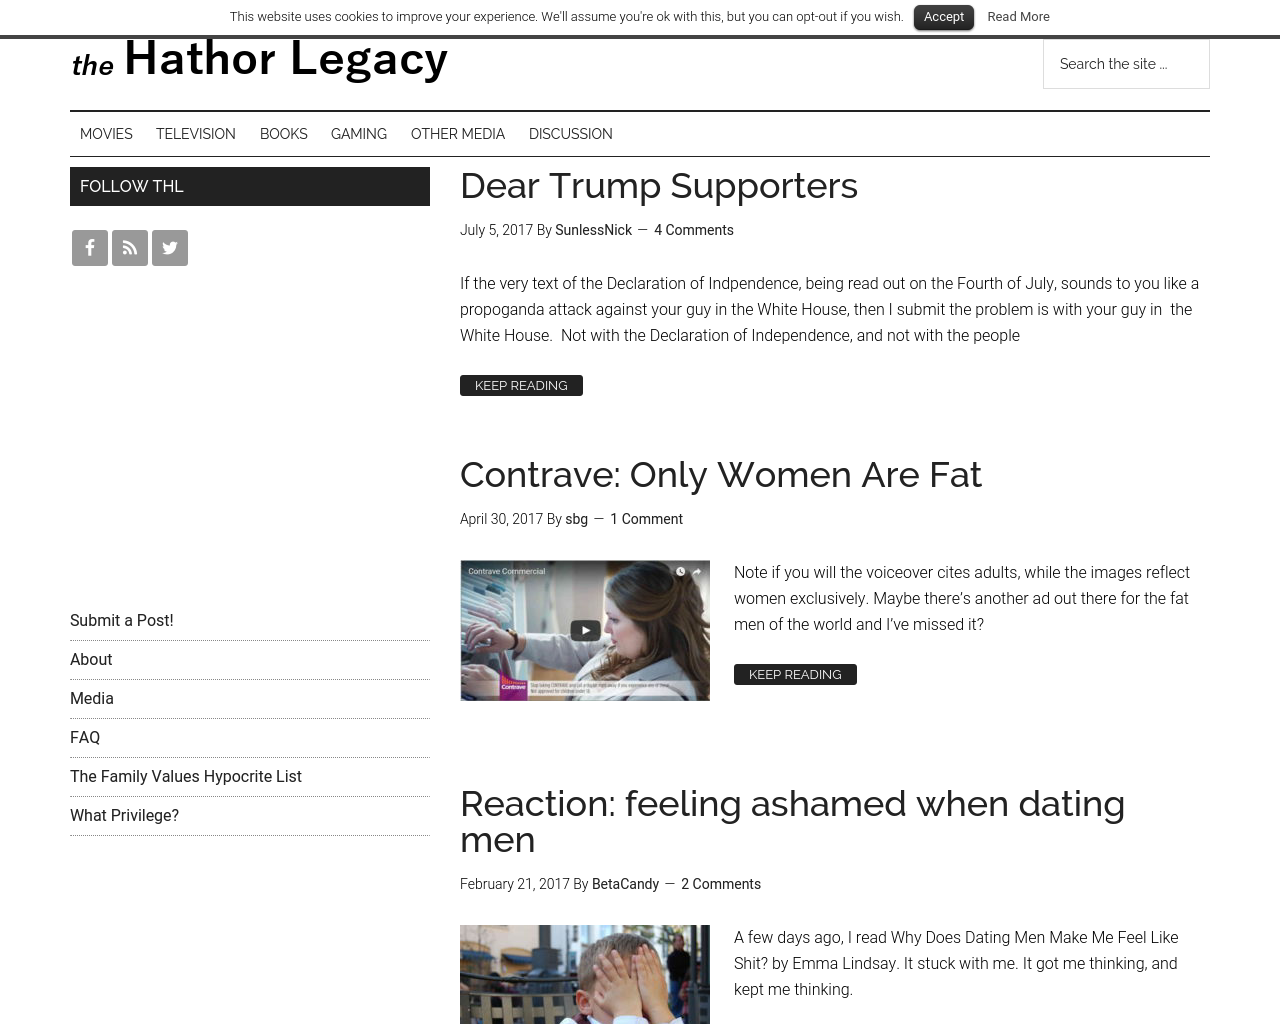 The-Hathor-Legacy-Advertising-Reviews-Pricing